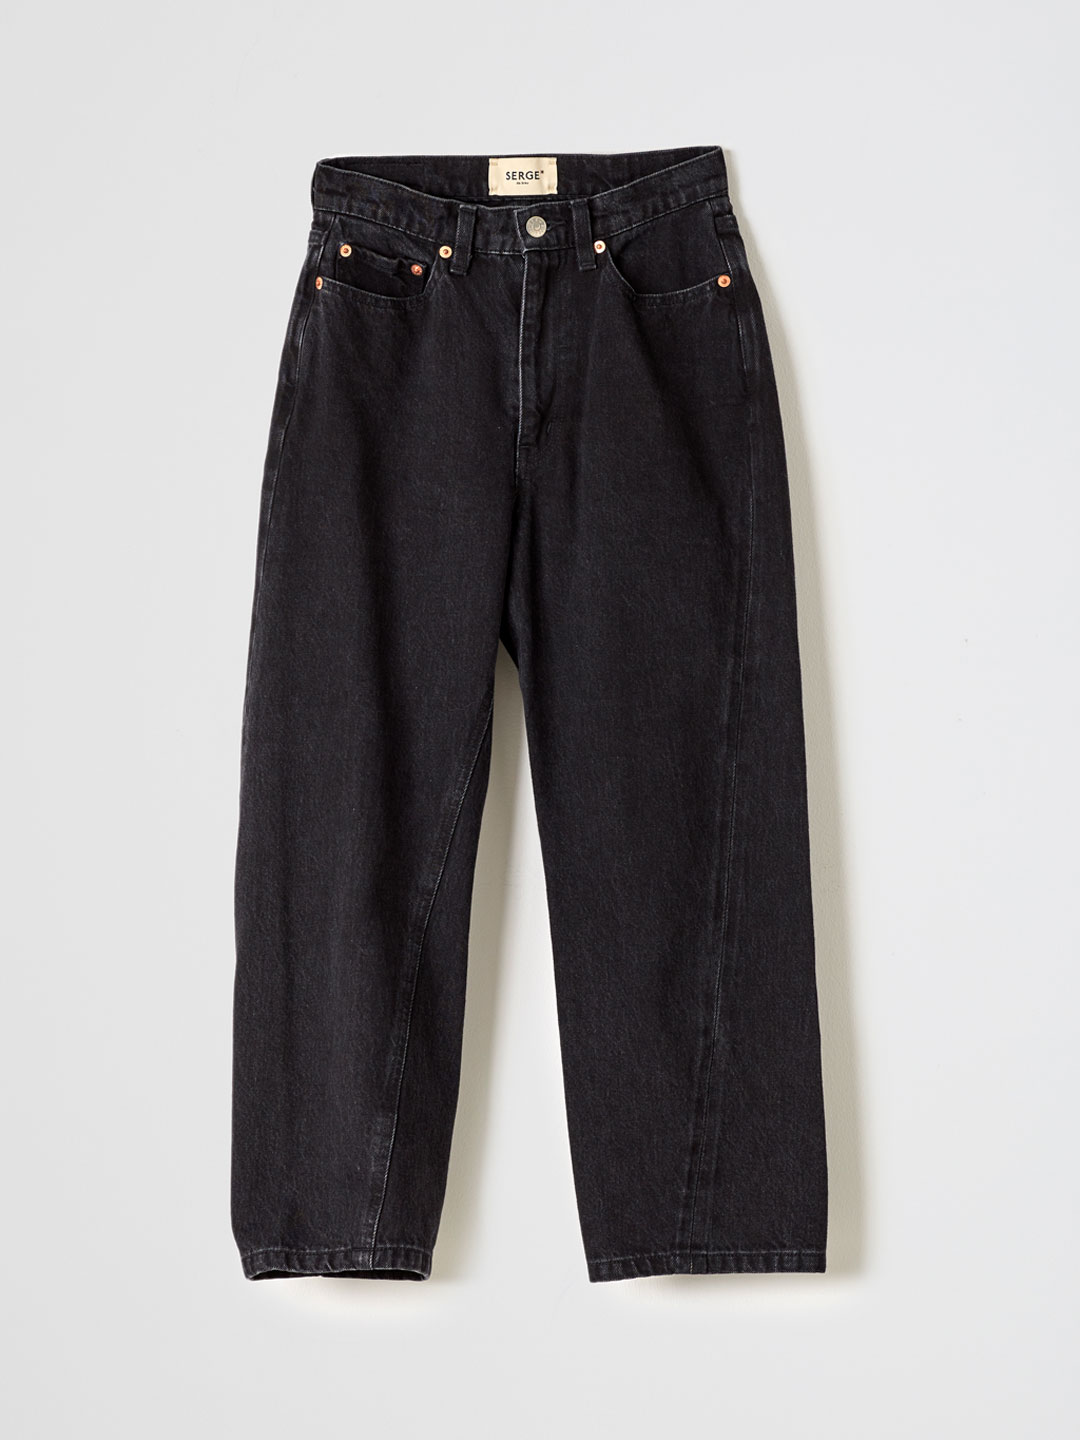 SERGE dodo bleu CROPPED PANTS - Black